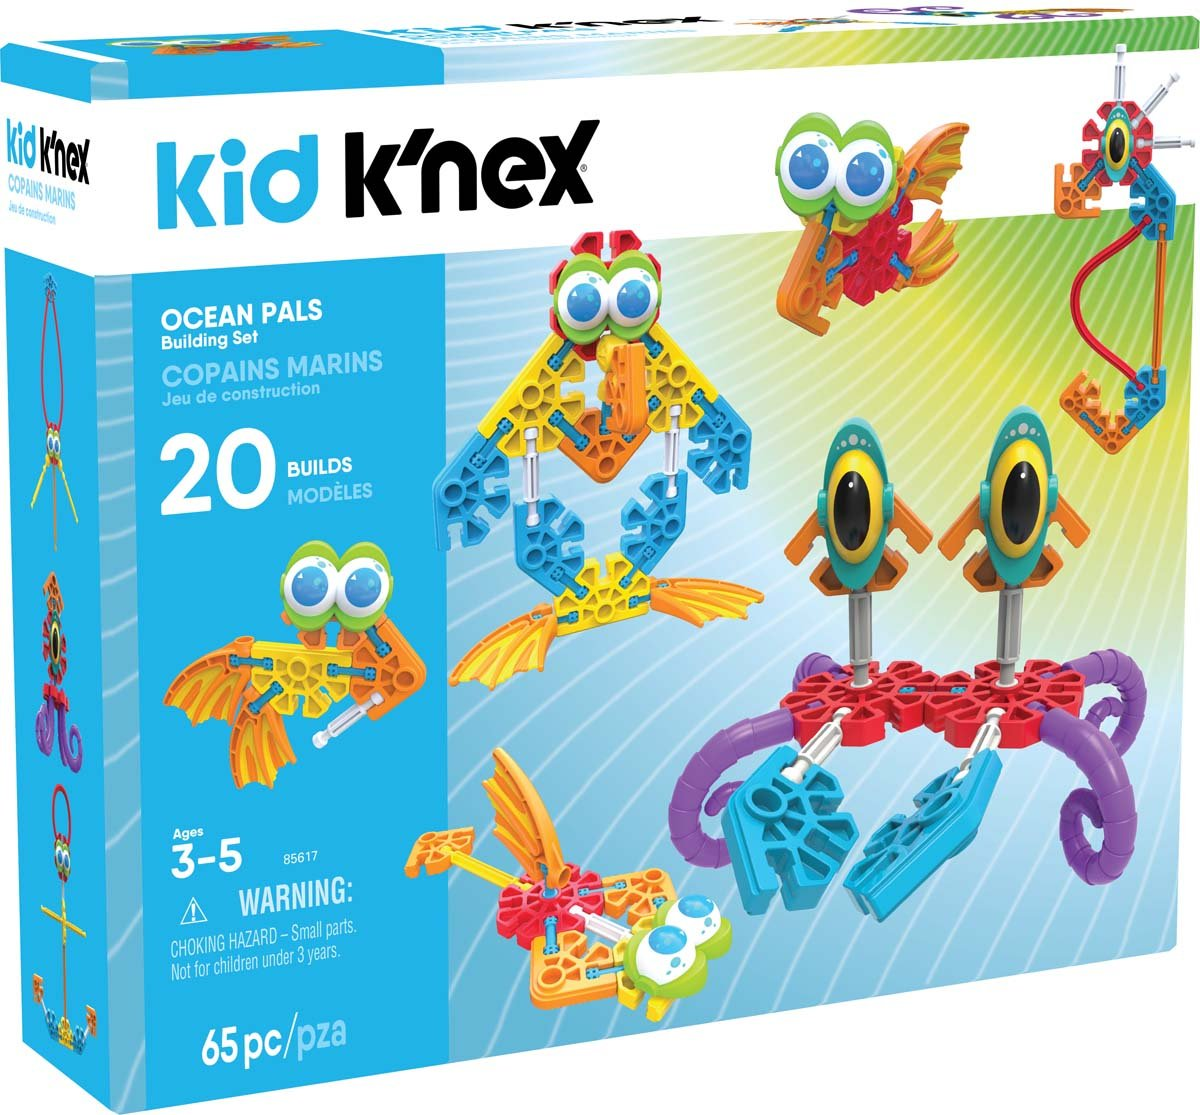 30 40 Snap Circuits Jr Select Green Elephant Toys Kid Knex Zoomin Rides Ocean Pals Assortment